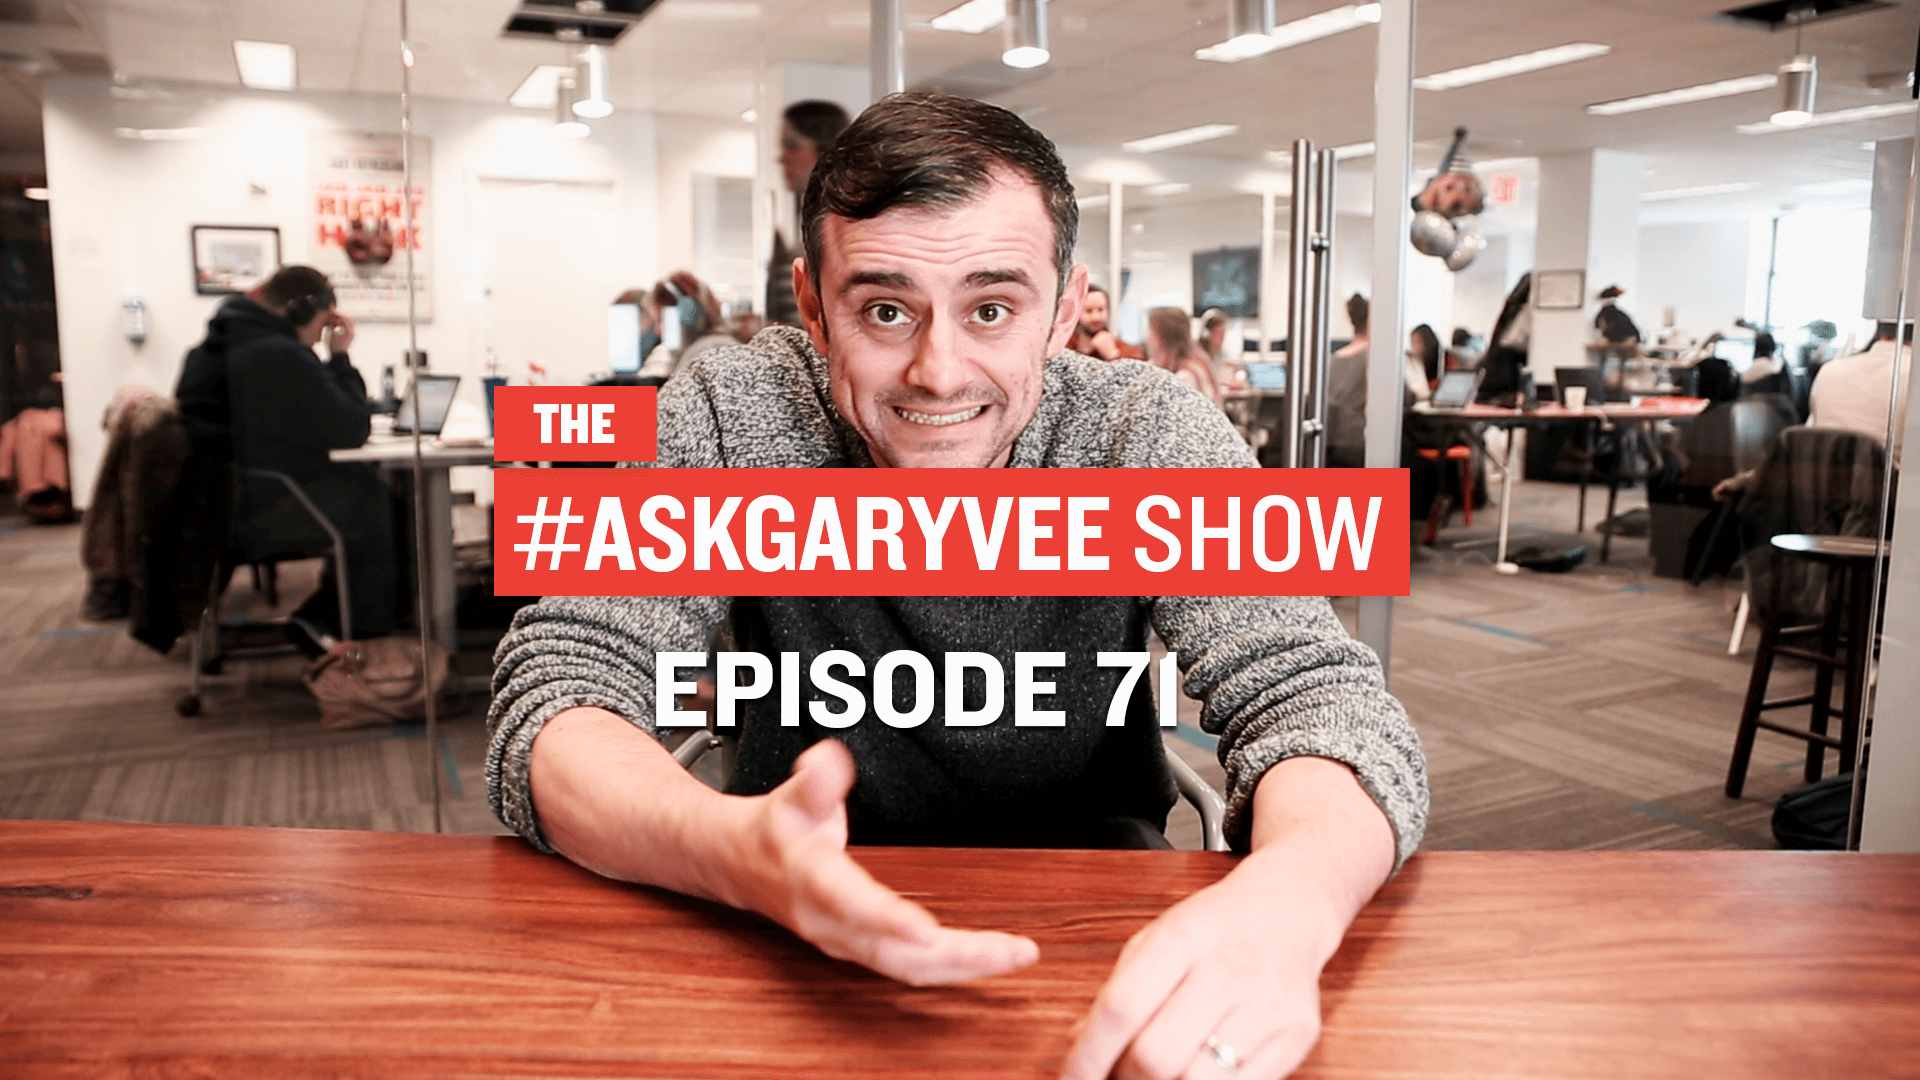 #AskGaryVee Episode 71